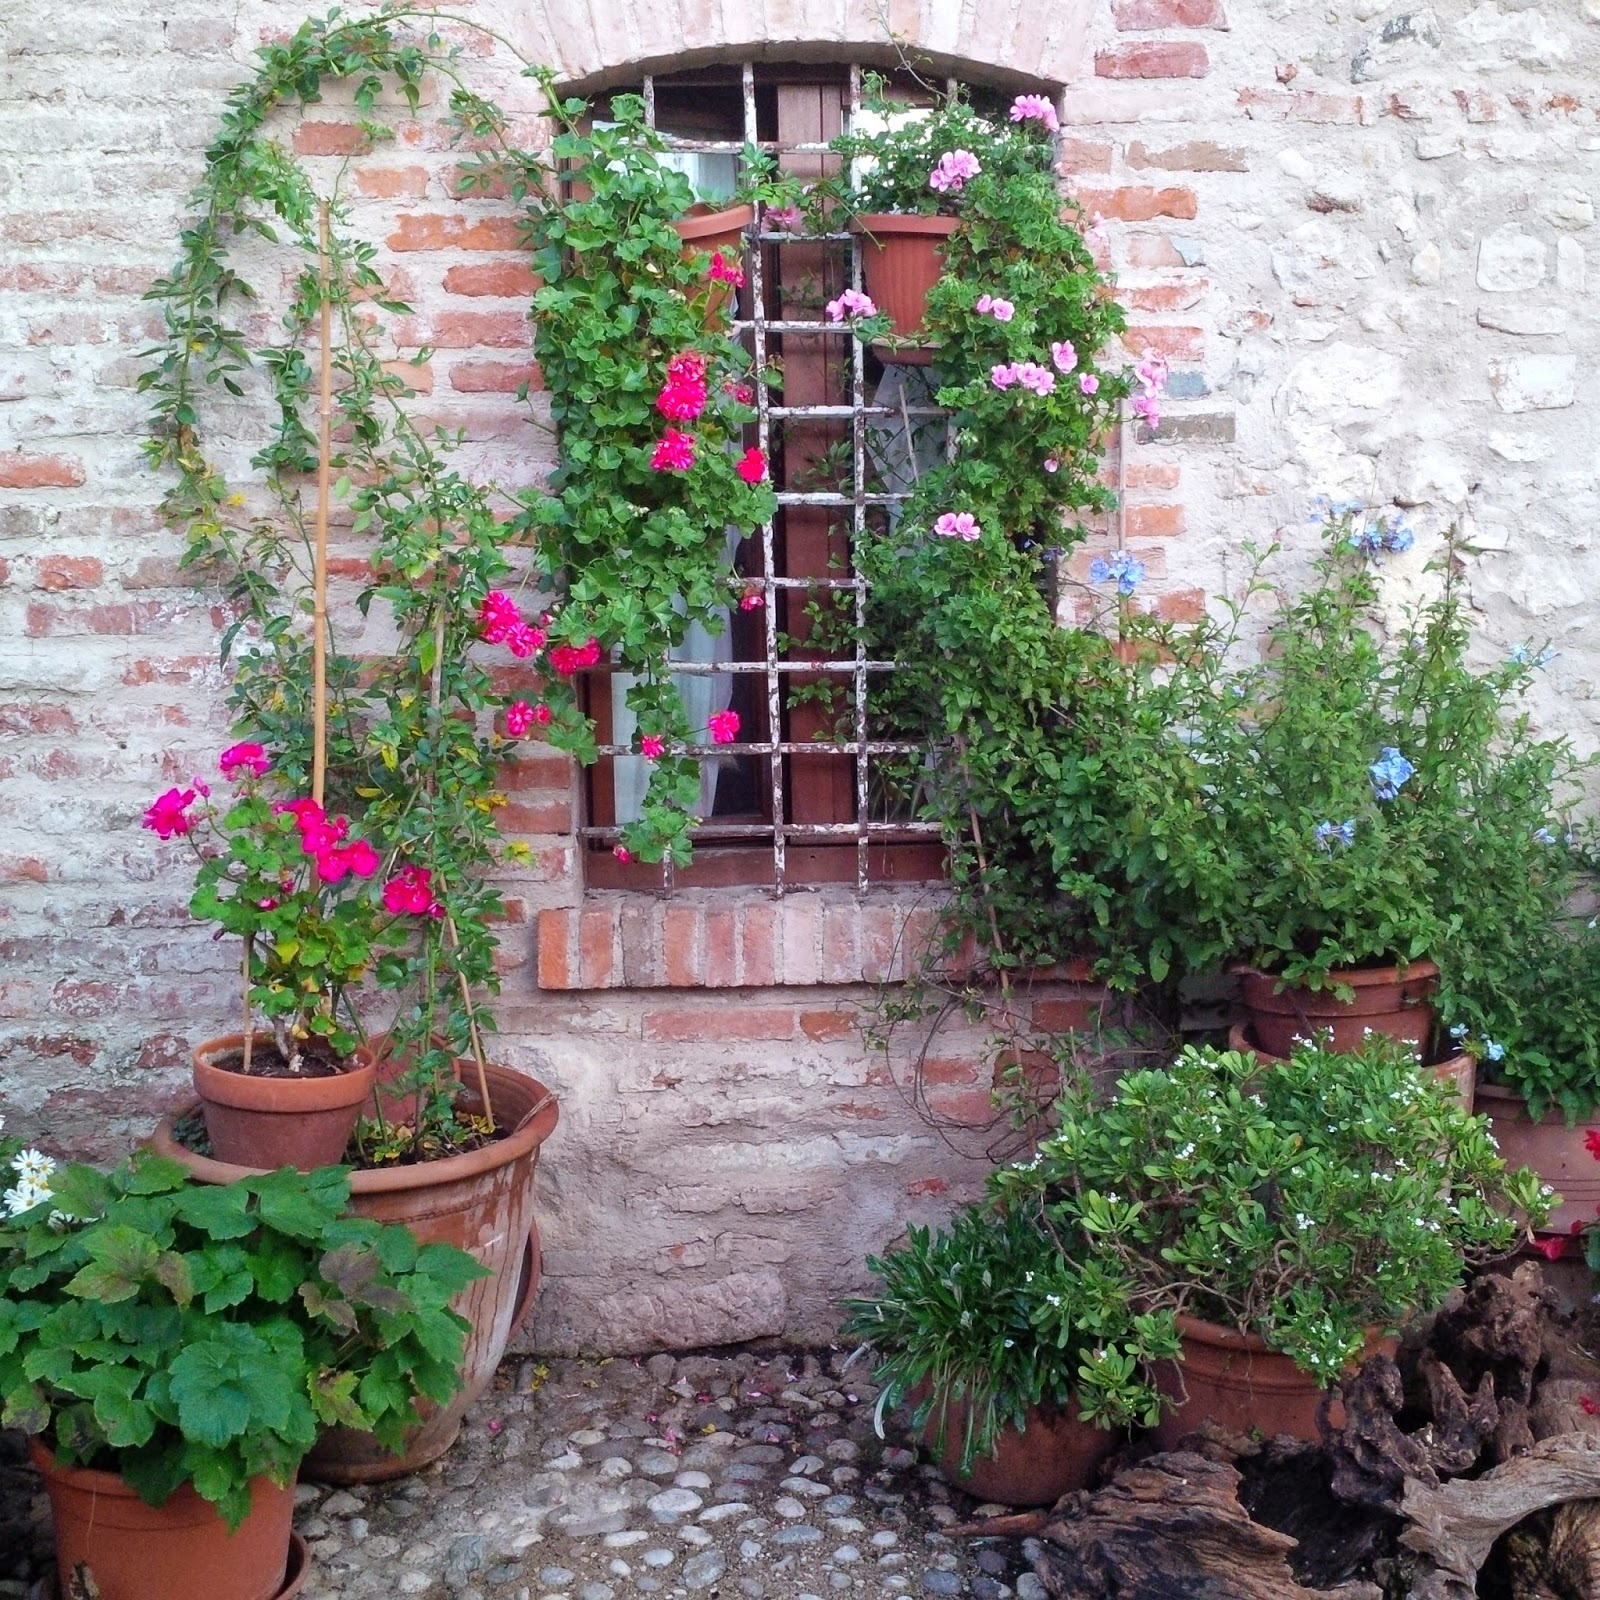 The potted garden of the Marostican Rapunzel